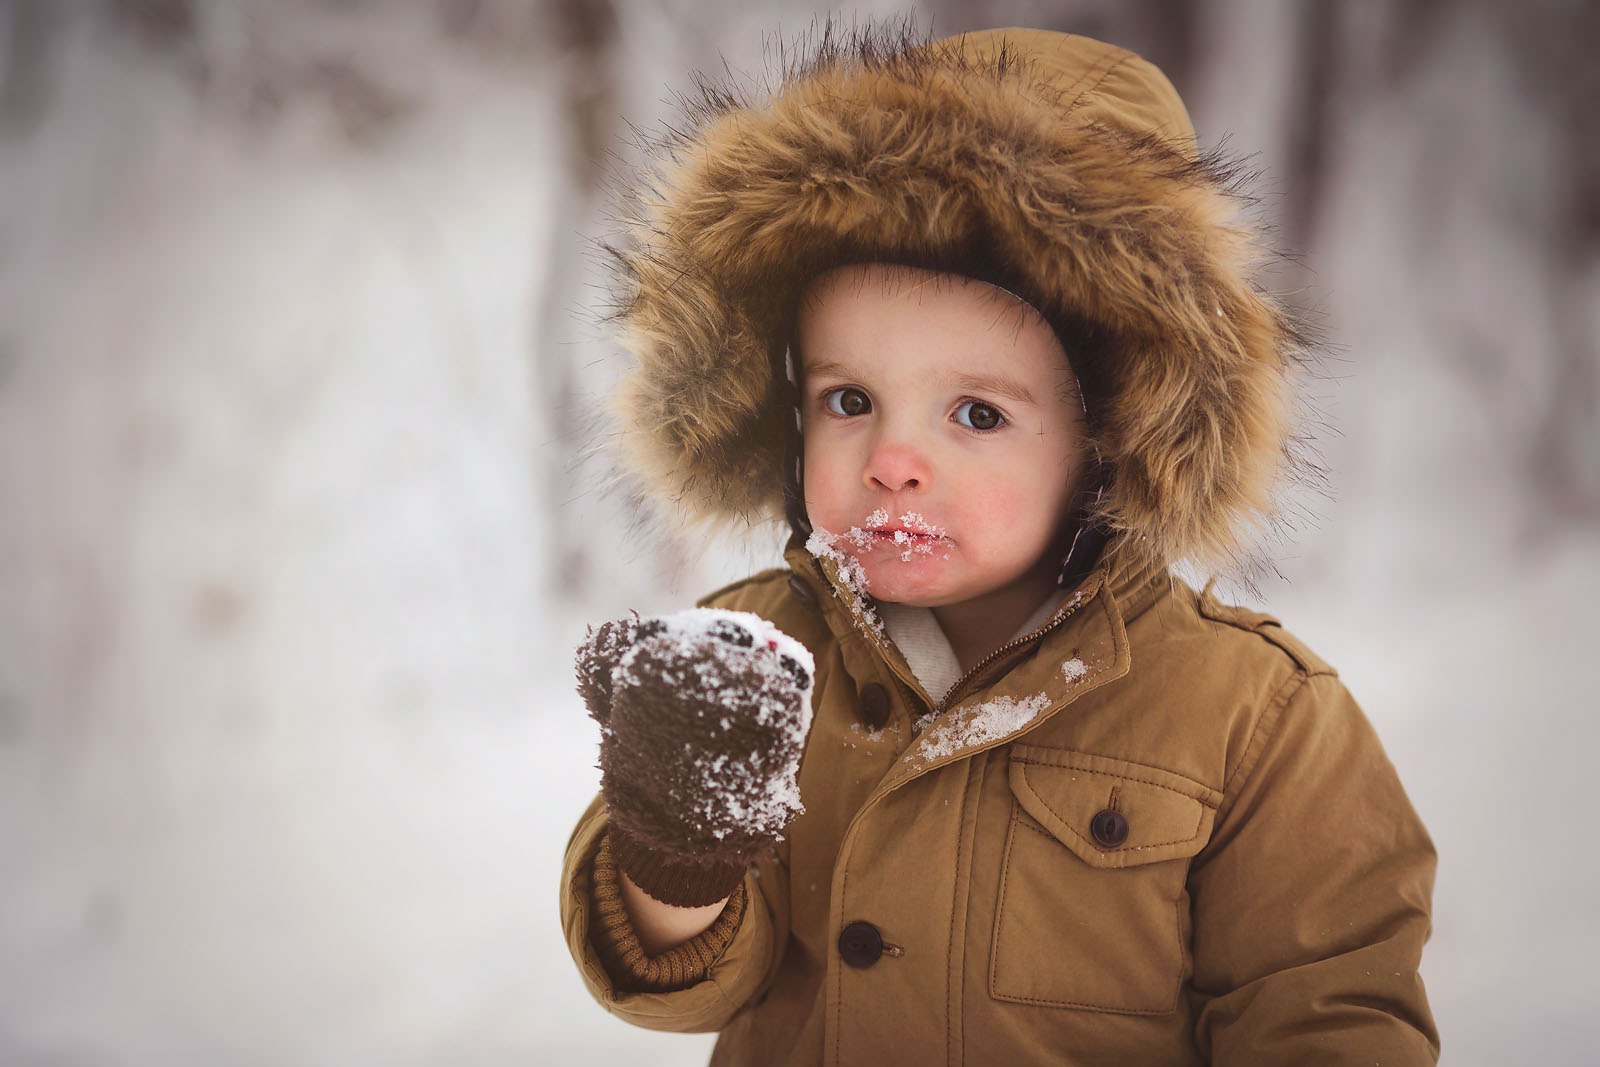 photo of boy eating snow by Amber Walder